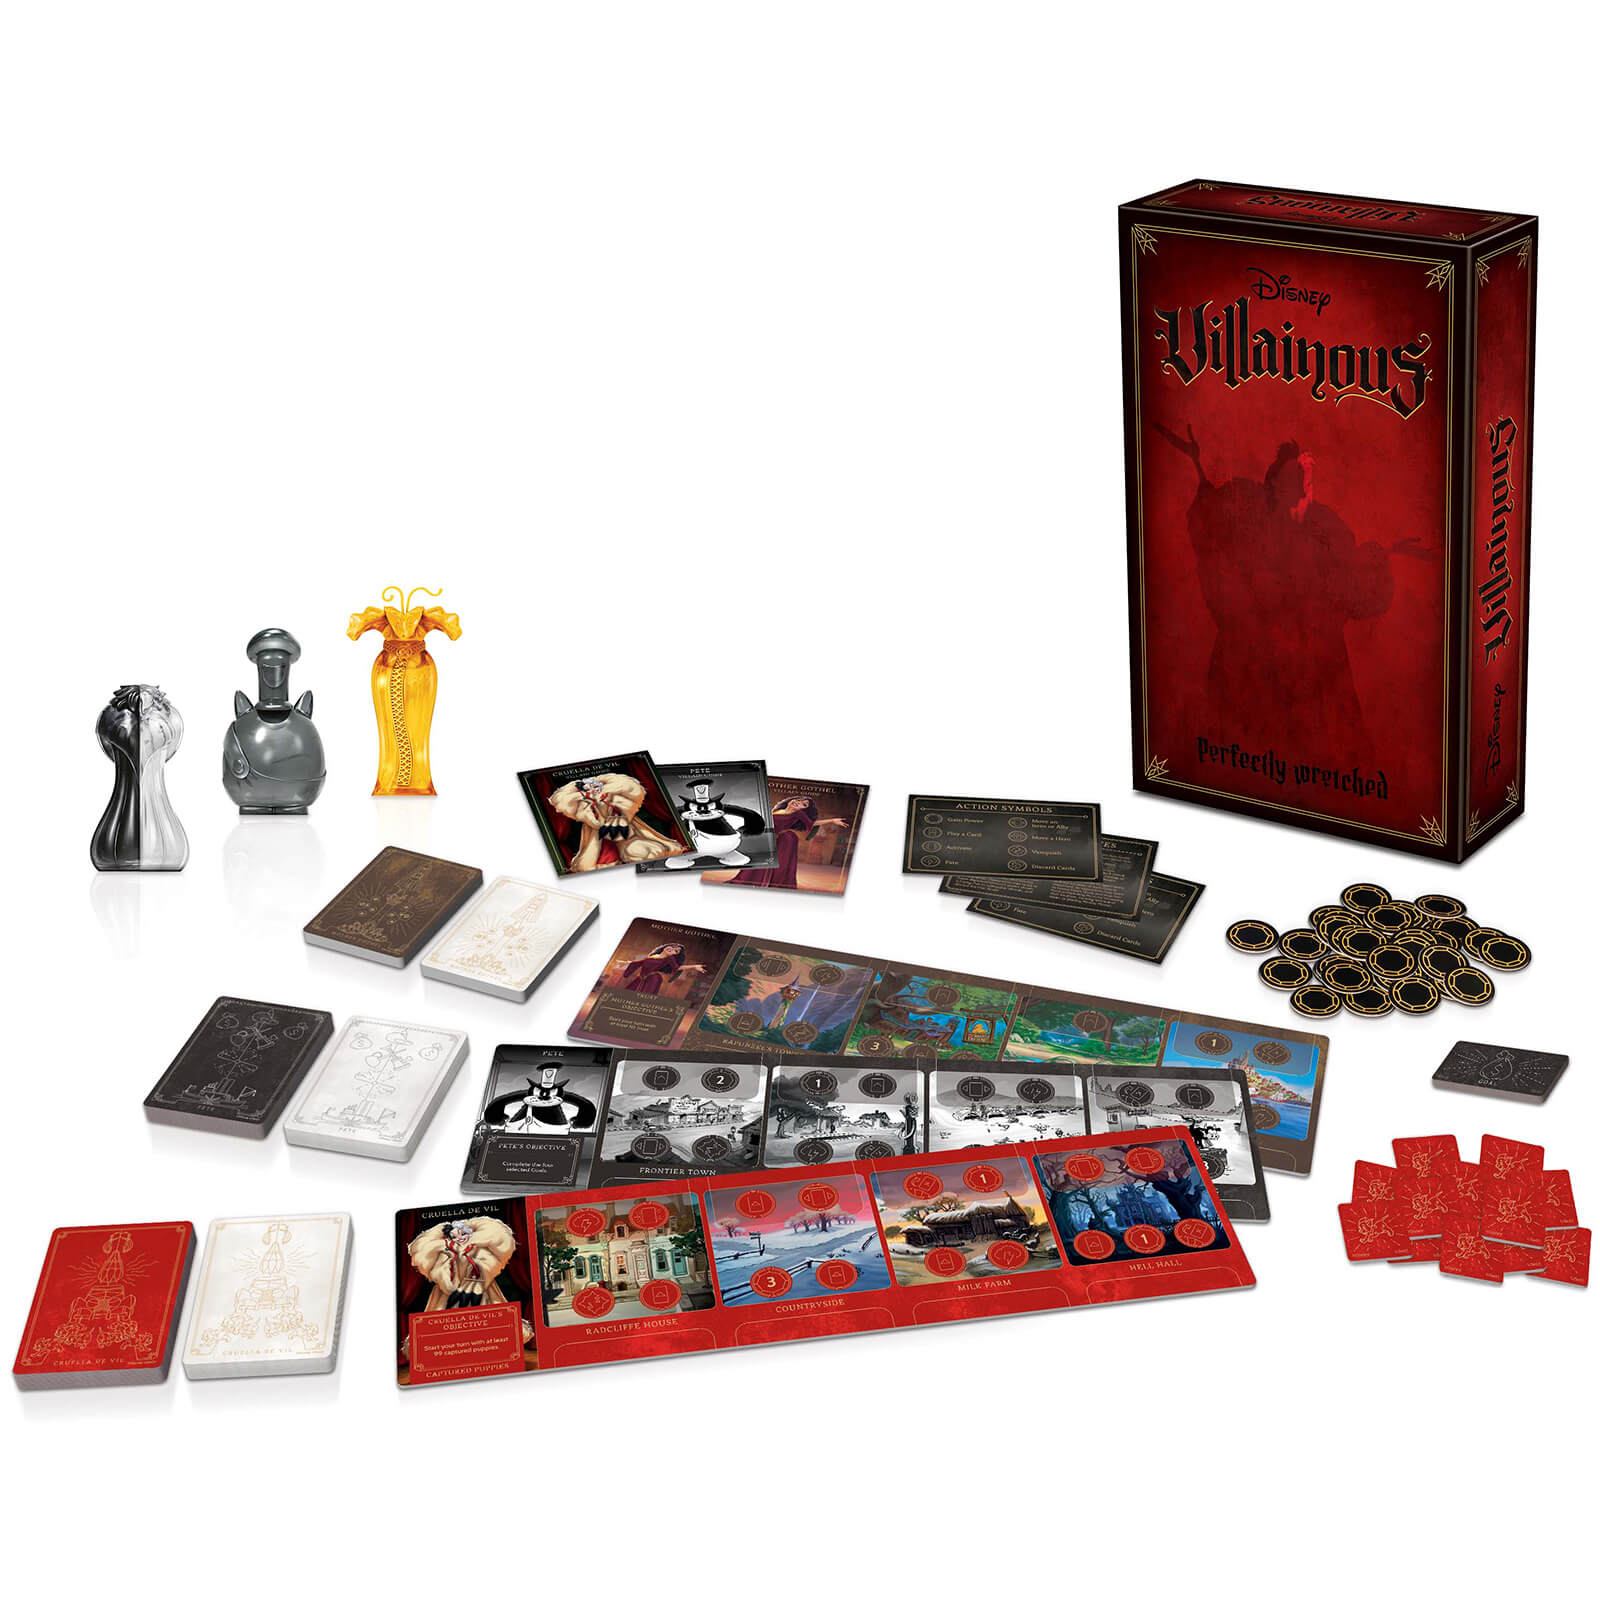 Image of Disney Villainous - Perfectly Wretched Expansion Pack